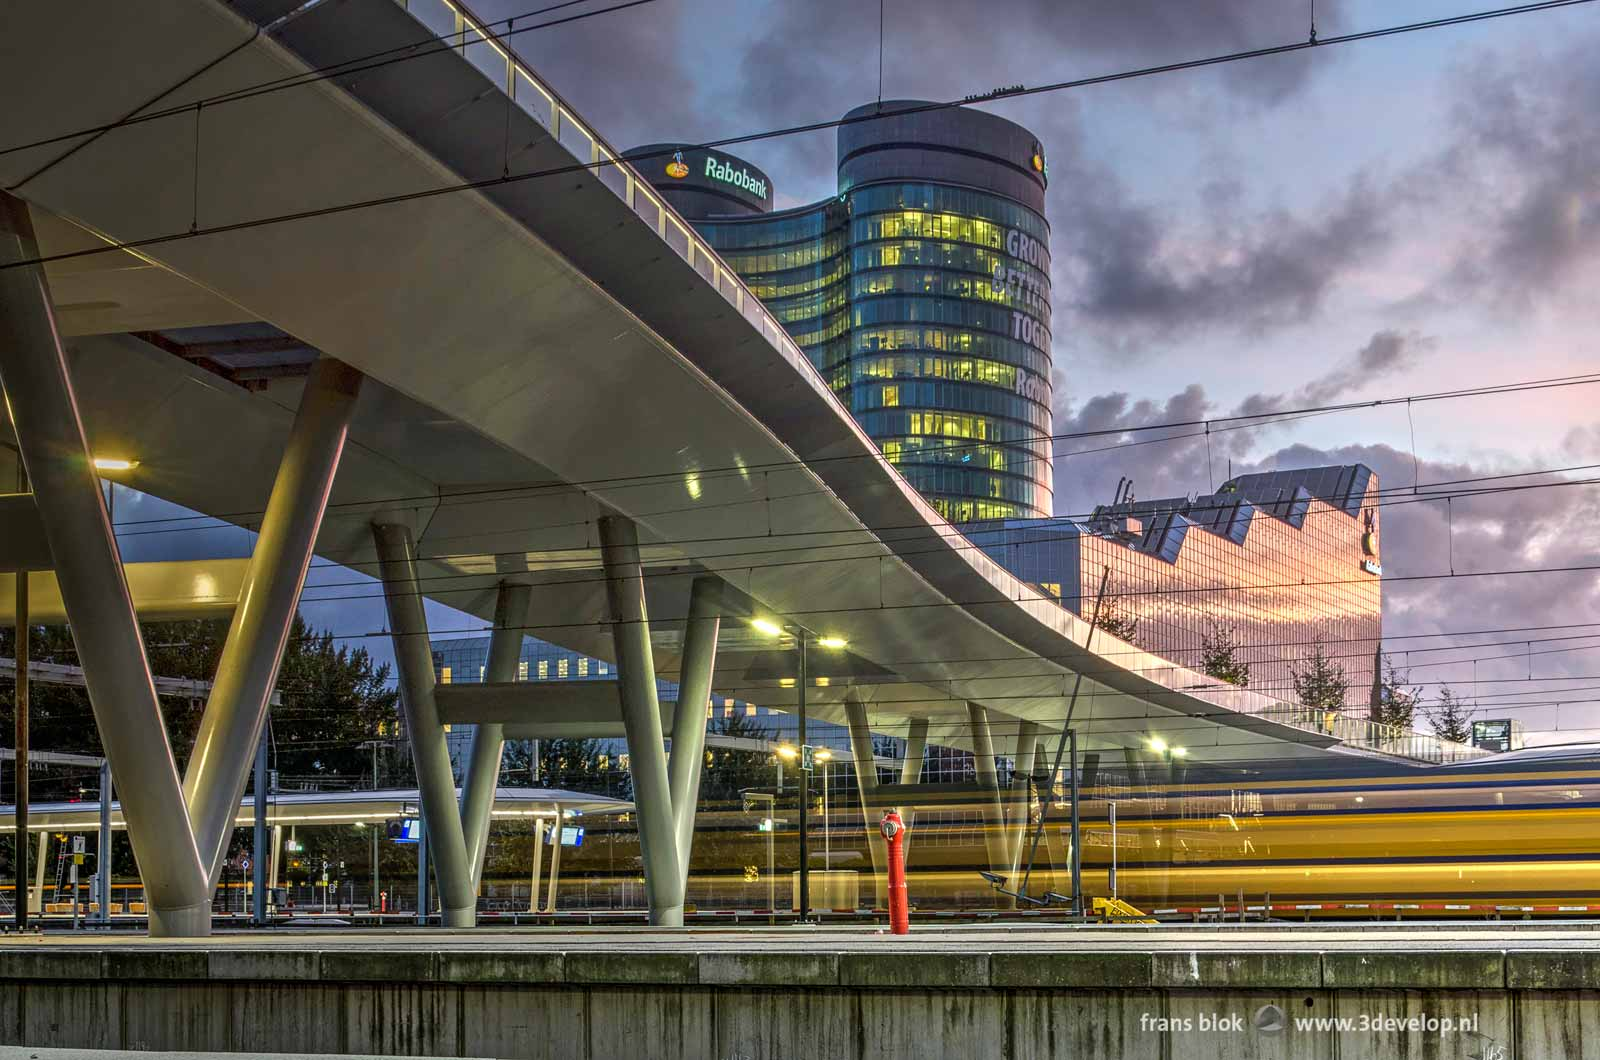 Photo made from one of the platforms on Utrecht Central railway station during the blue hour with the new pedestrian bridge, the Rabobank building and a passing train